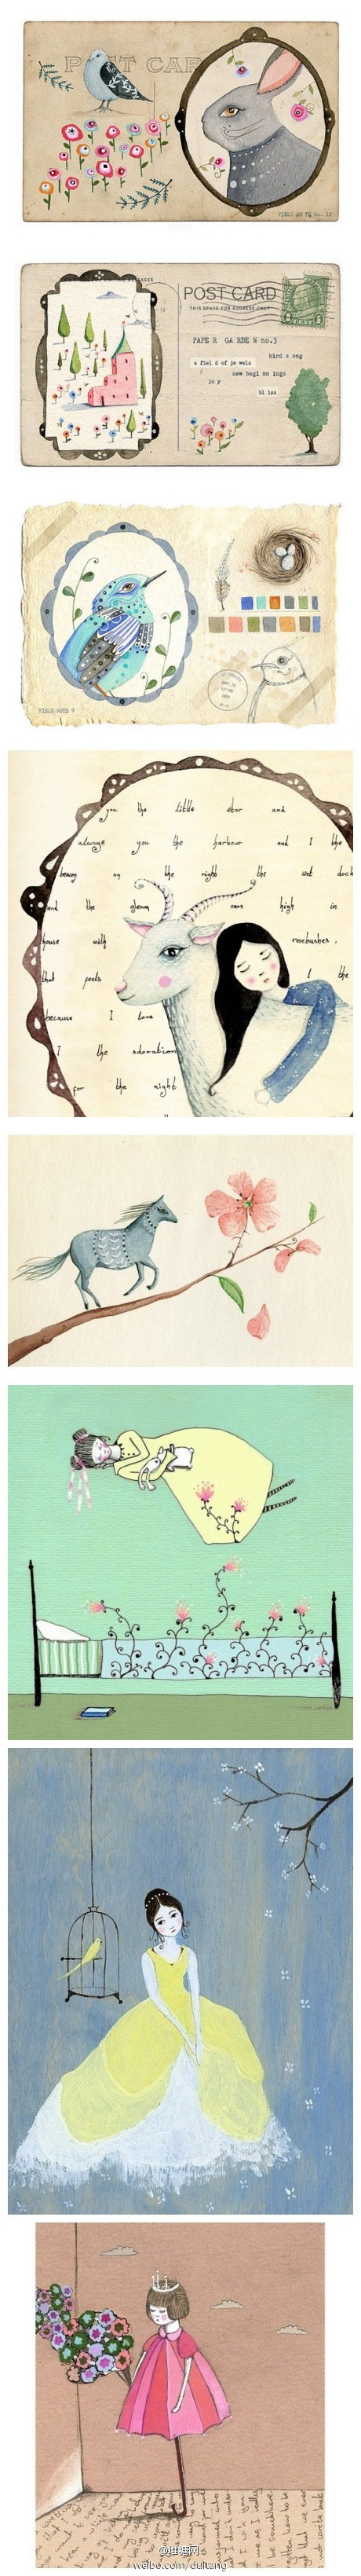 www.thefurnitureemporium.com, we LOVE art, what about you. Please repin, like or share with others: Arte Diseño Ilustración, Amazing Art, Ponies, Art Heart, Artful Mind, Art Pony, Art Book